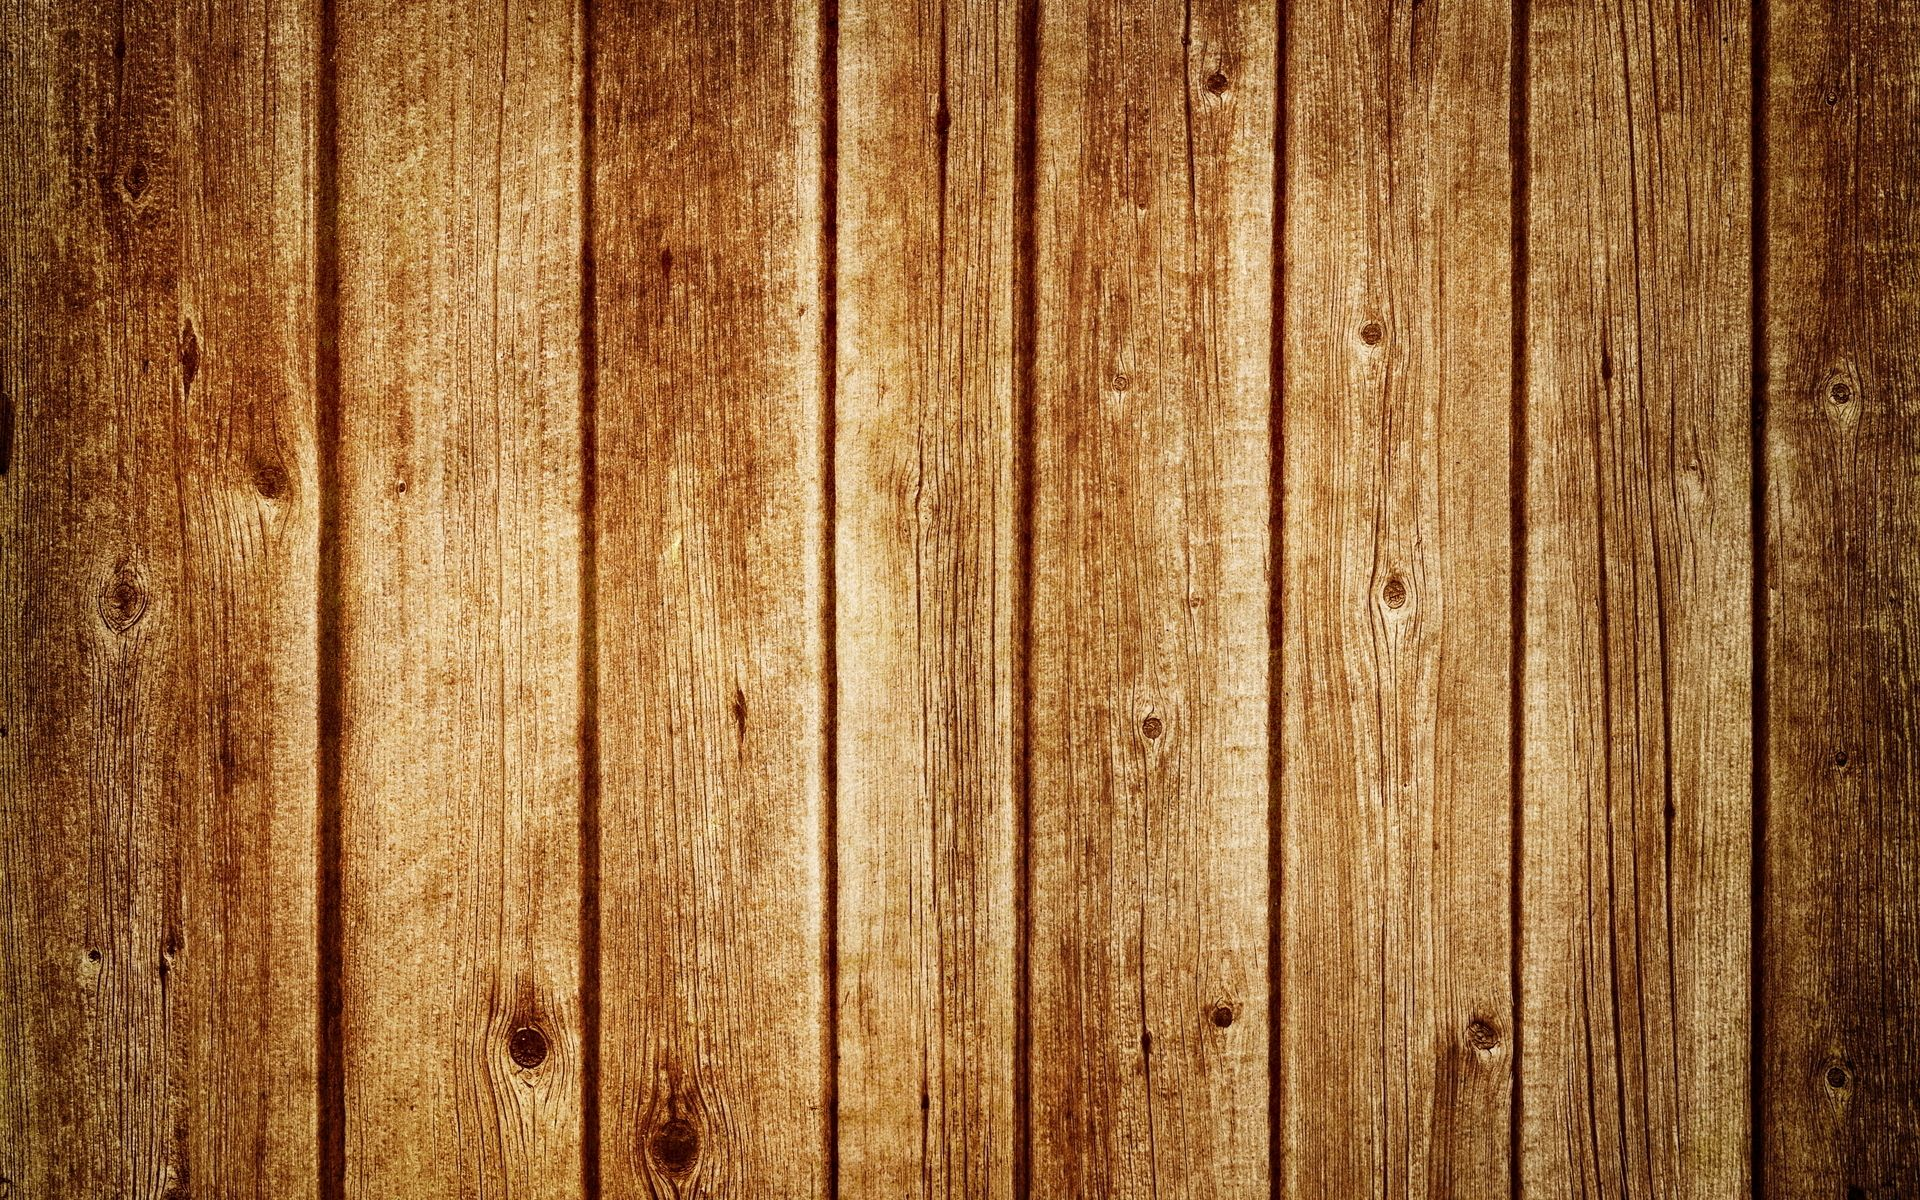 Texture Wallpaper Board Wood   Resolution Wallpapers Style Background Wallpaper